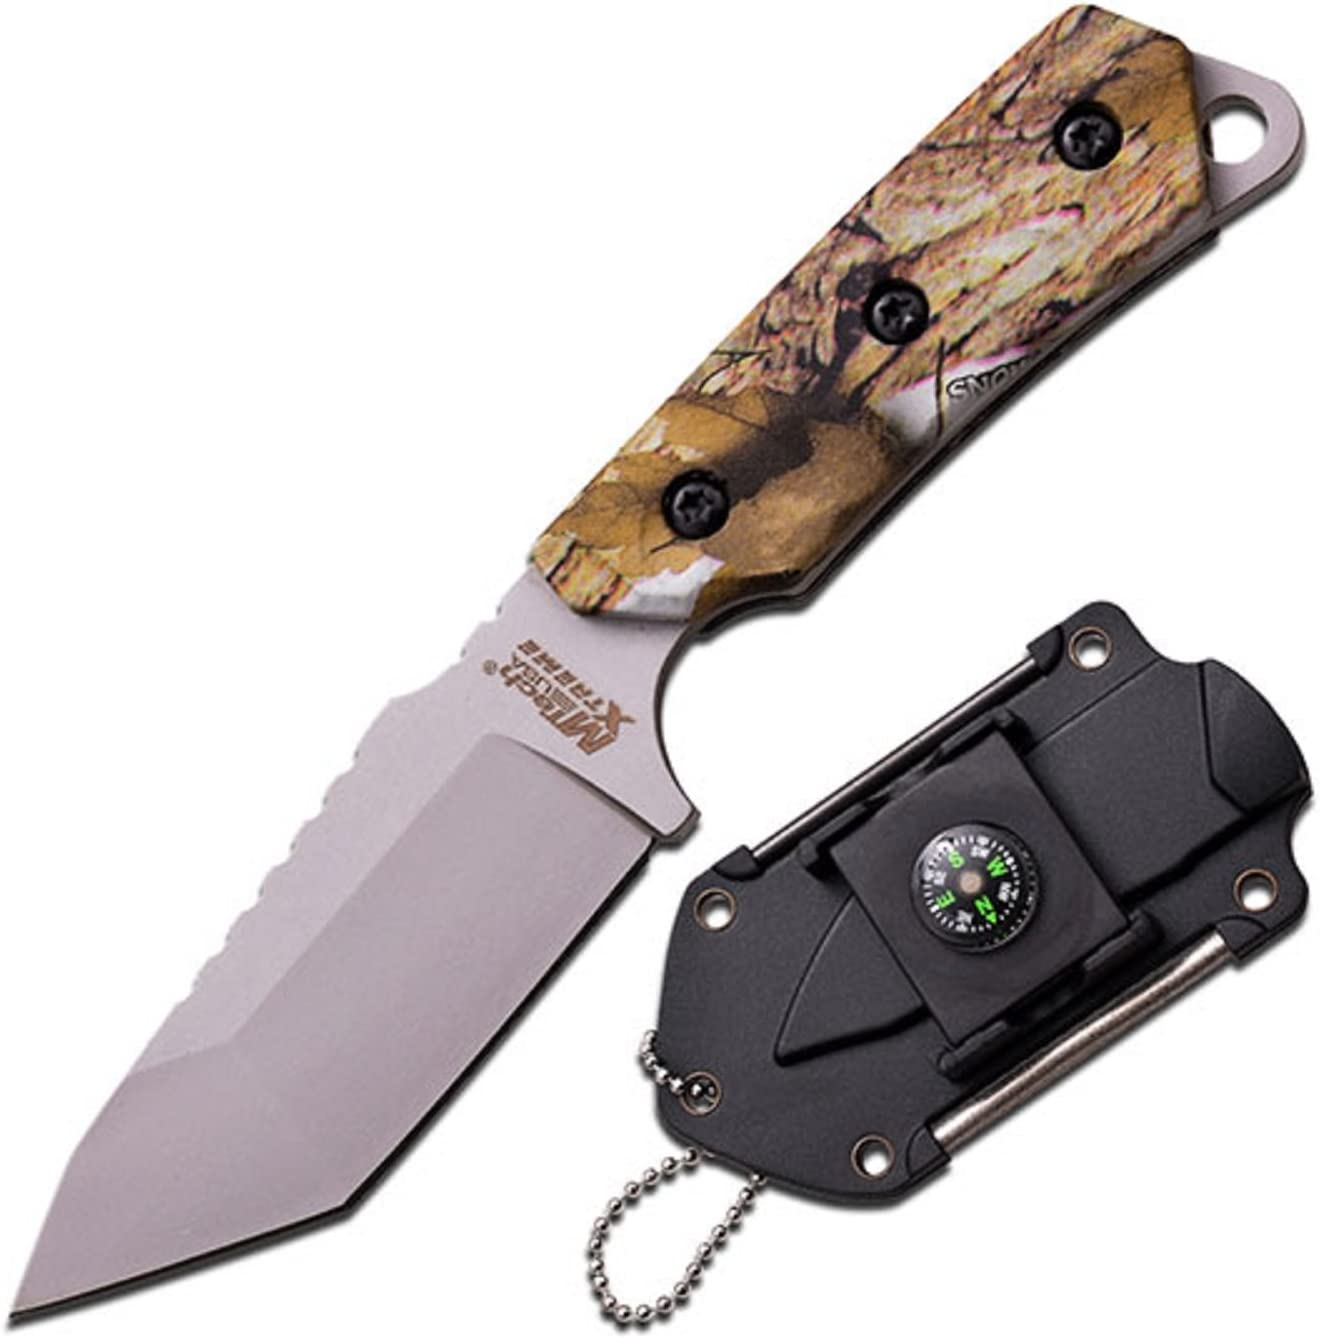 Master Cutlery M-Tech USA Xtreme Neck Knife with Coated G10 Handle, Camo, 5.5